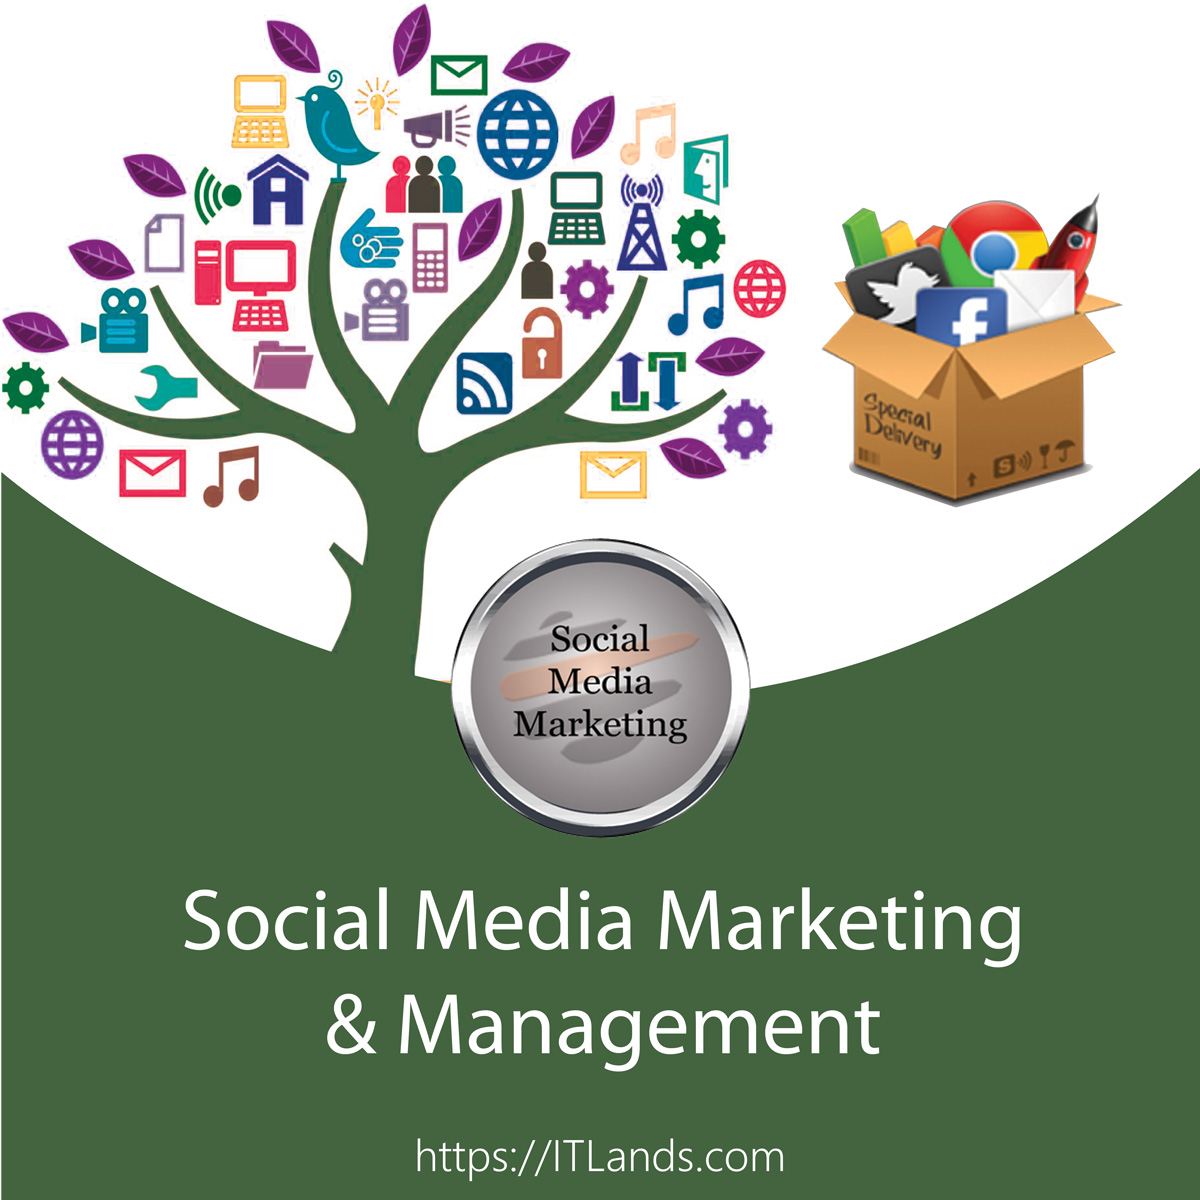 ITLands Social Media Marketing and Management